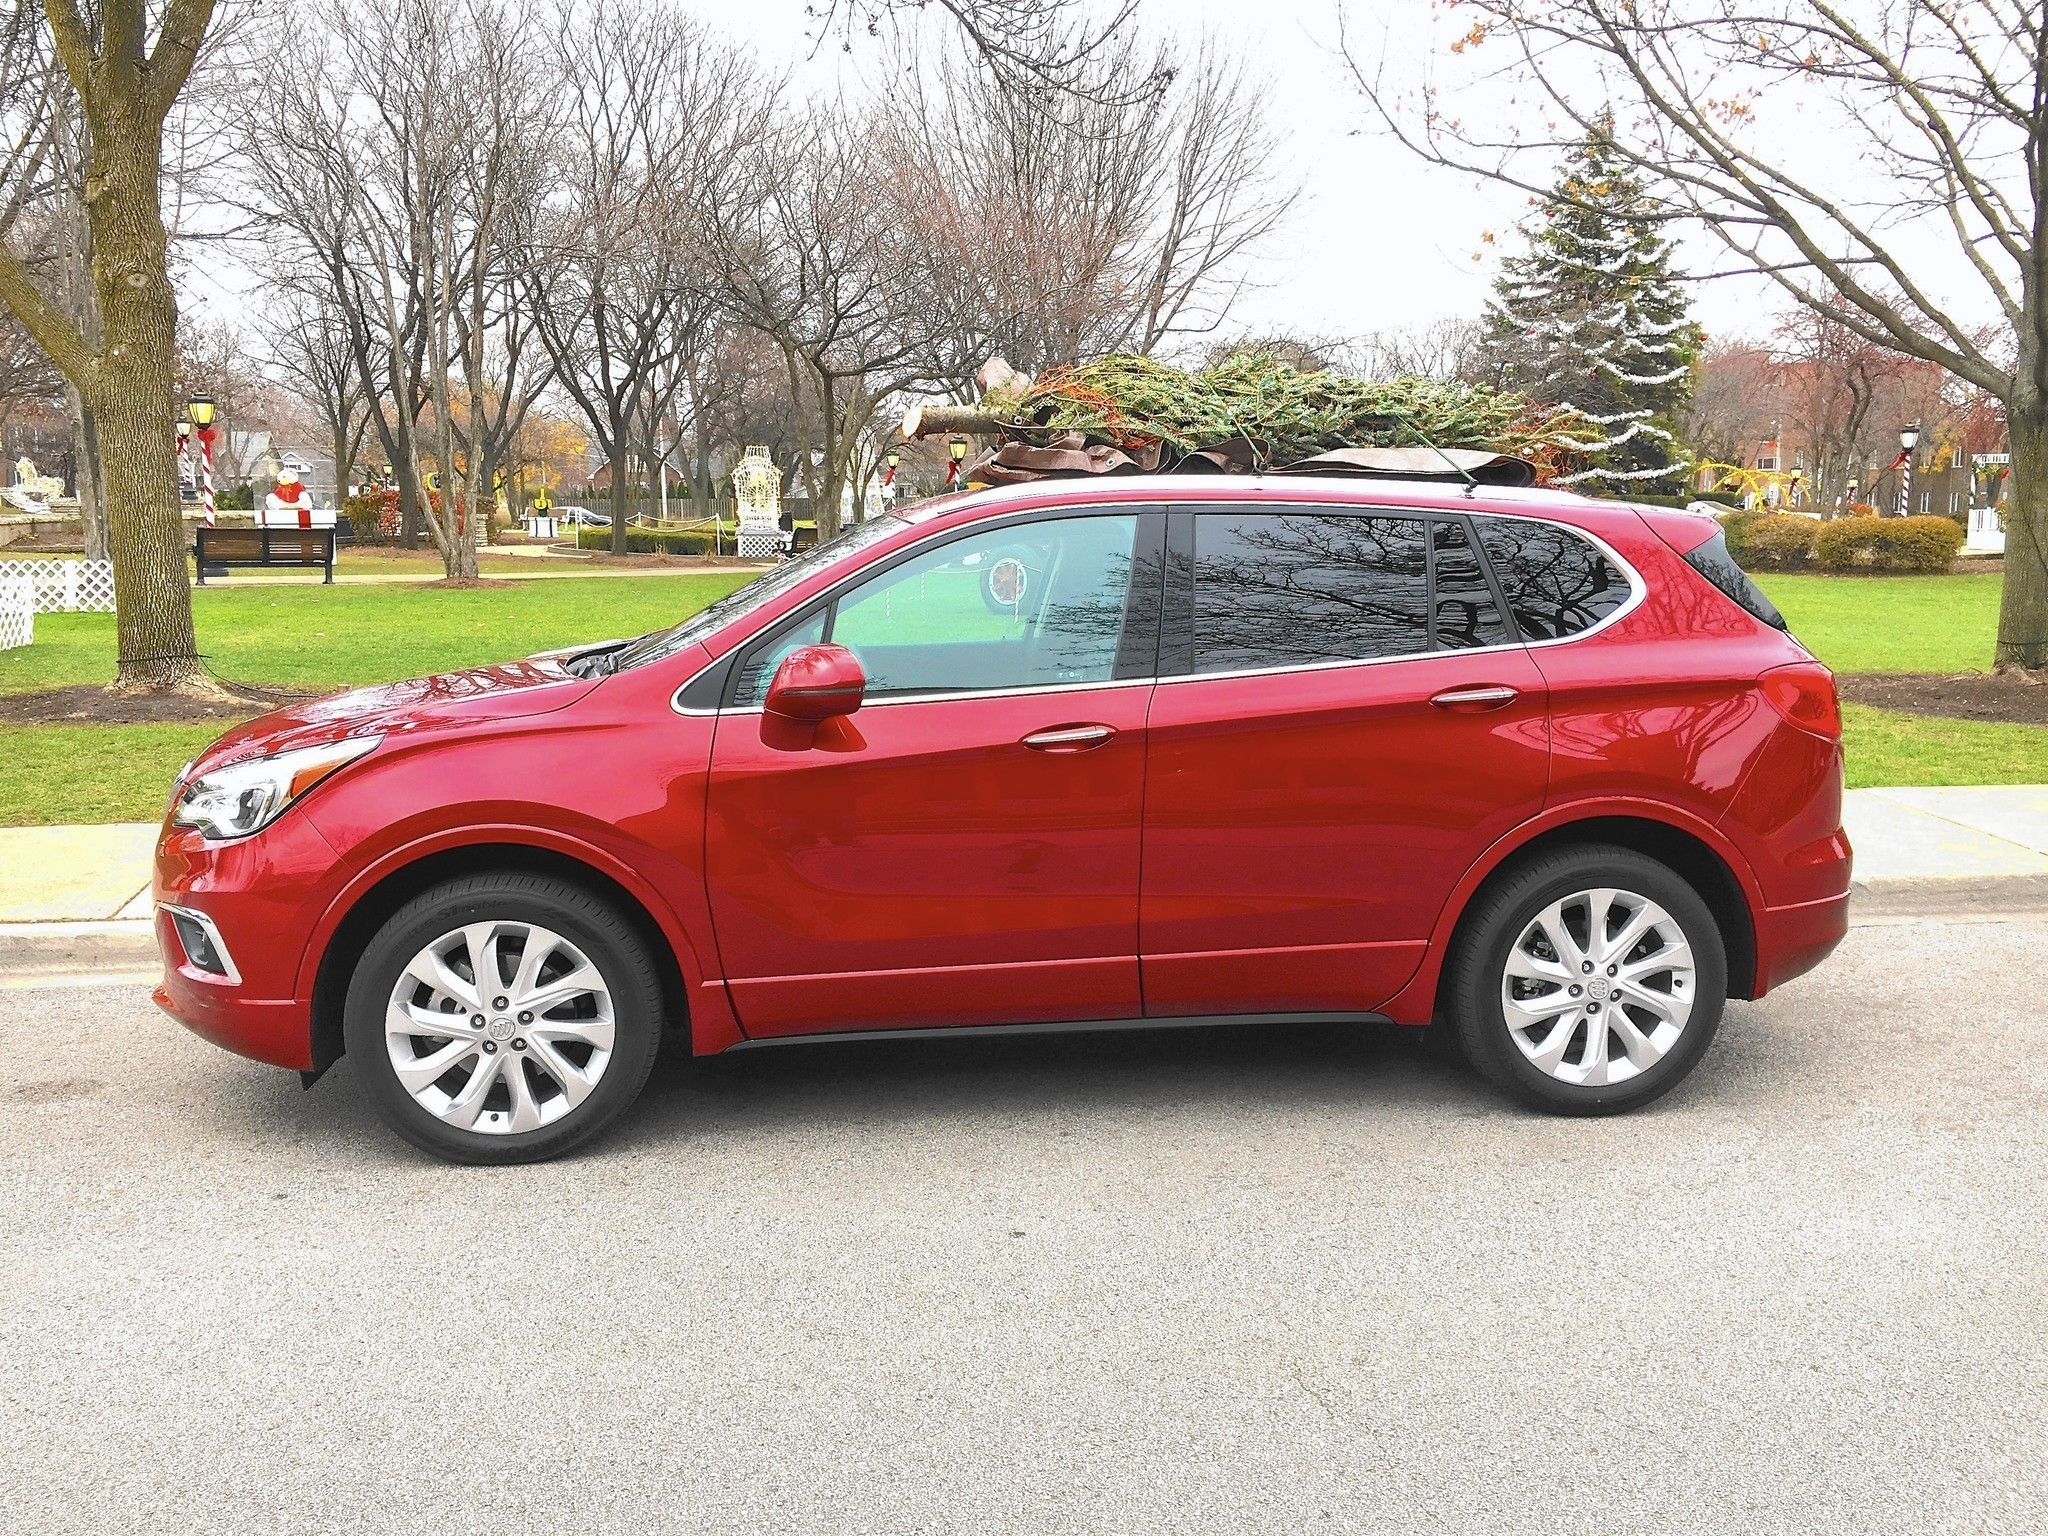 buick envision is a premium crossover with a value proposition car reviews - Suv Reviews